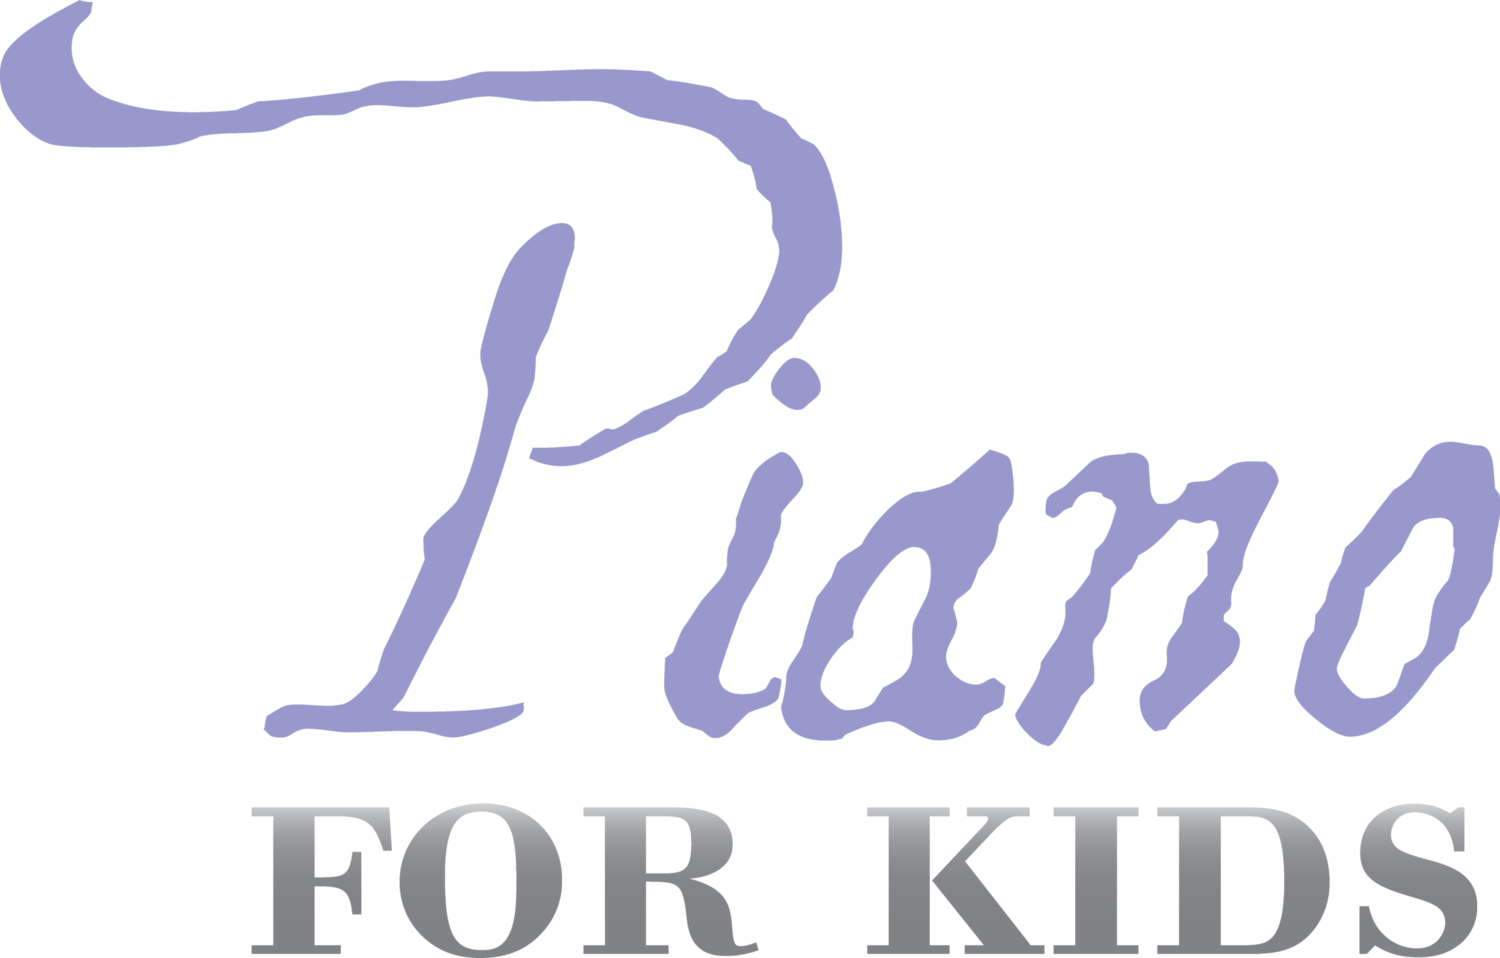 Piano For Kids | Piano Lessons For Kids, Age 3 through 12, in South Orange County, California.